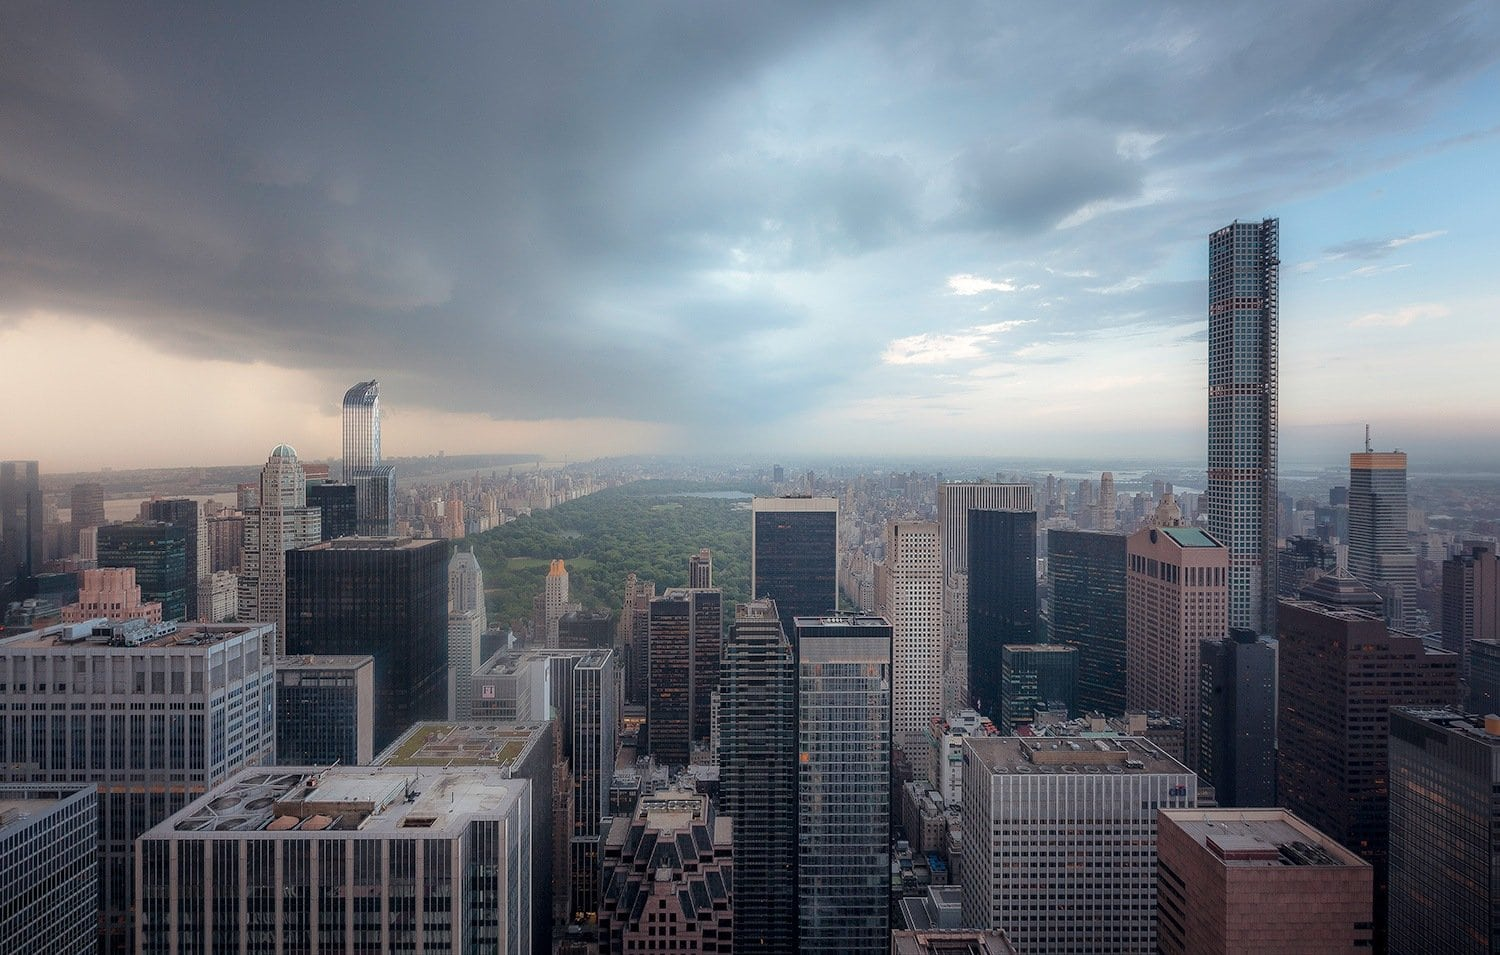 HDR Photography New York in the Rain